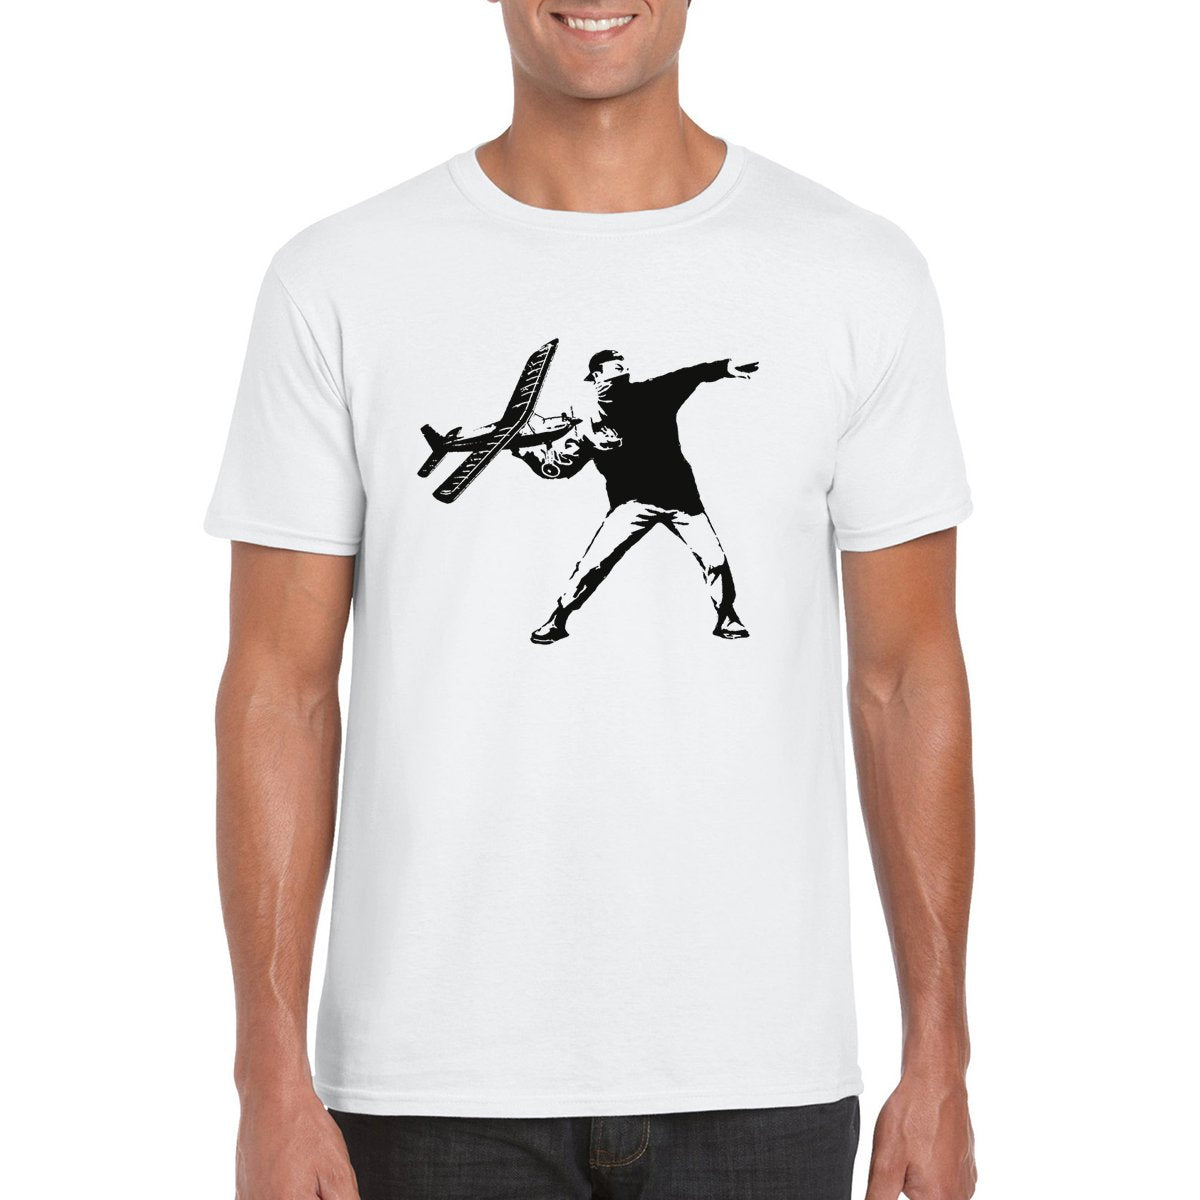 PLANE THROWER T-Shirt